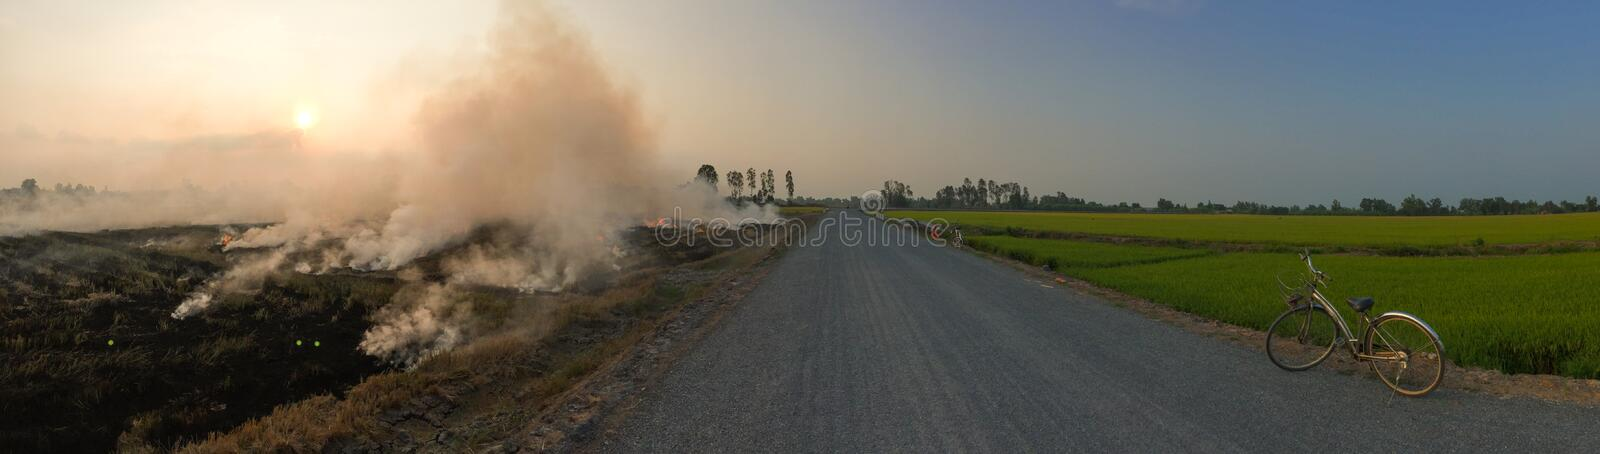 The burning of rice straw on the fields stock photos